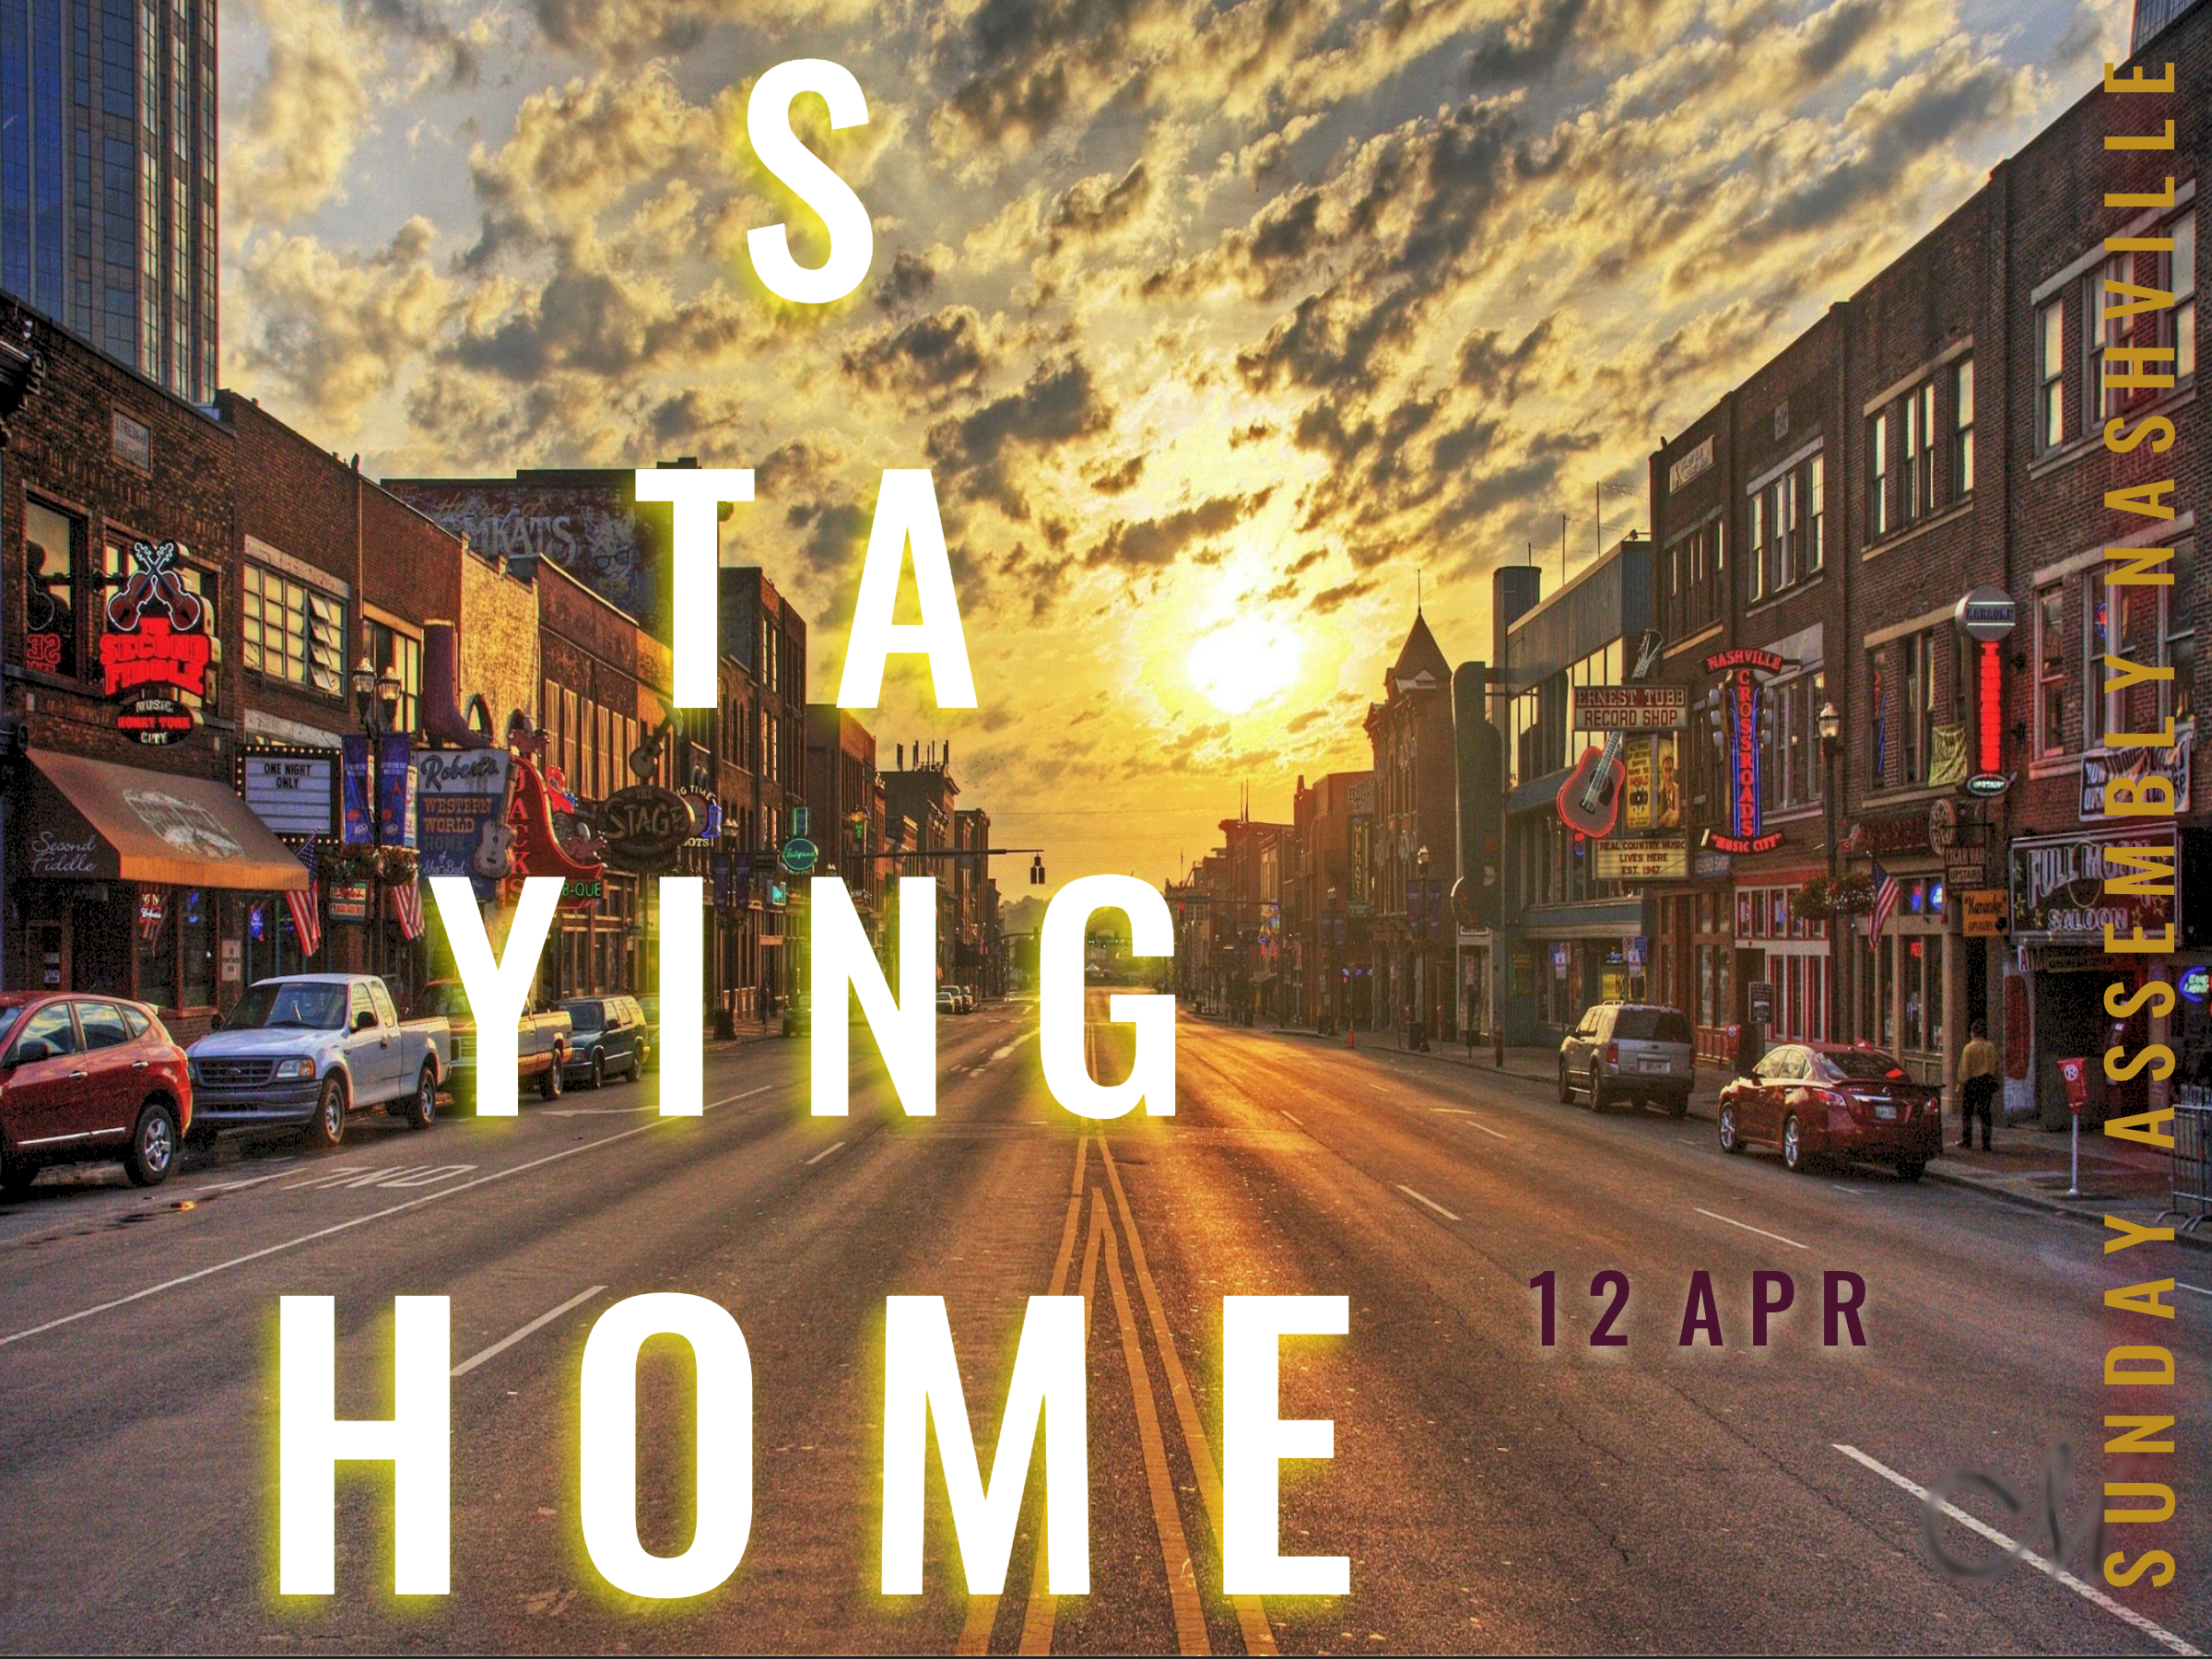 Staying Home • 12 april 2020